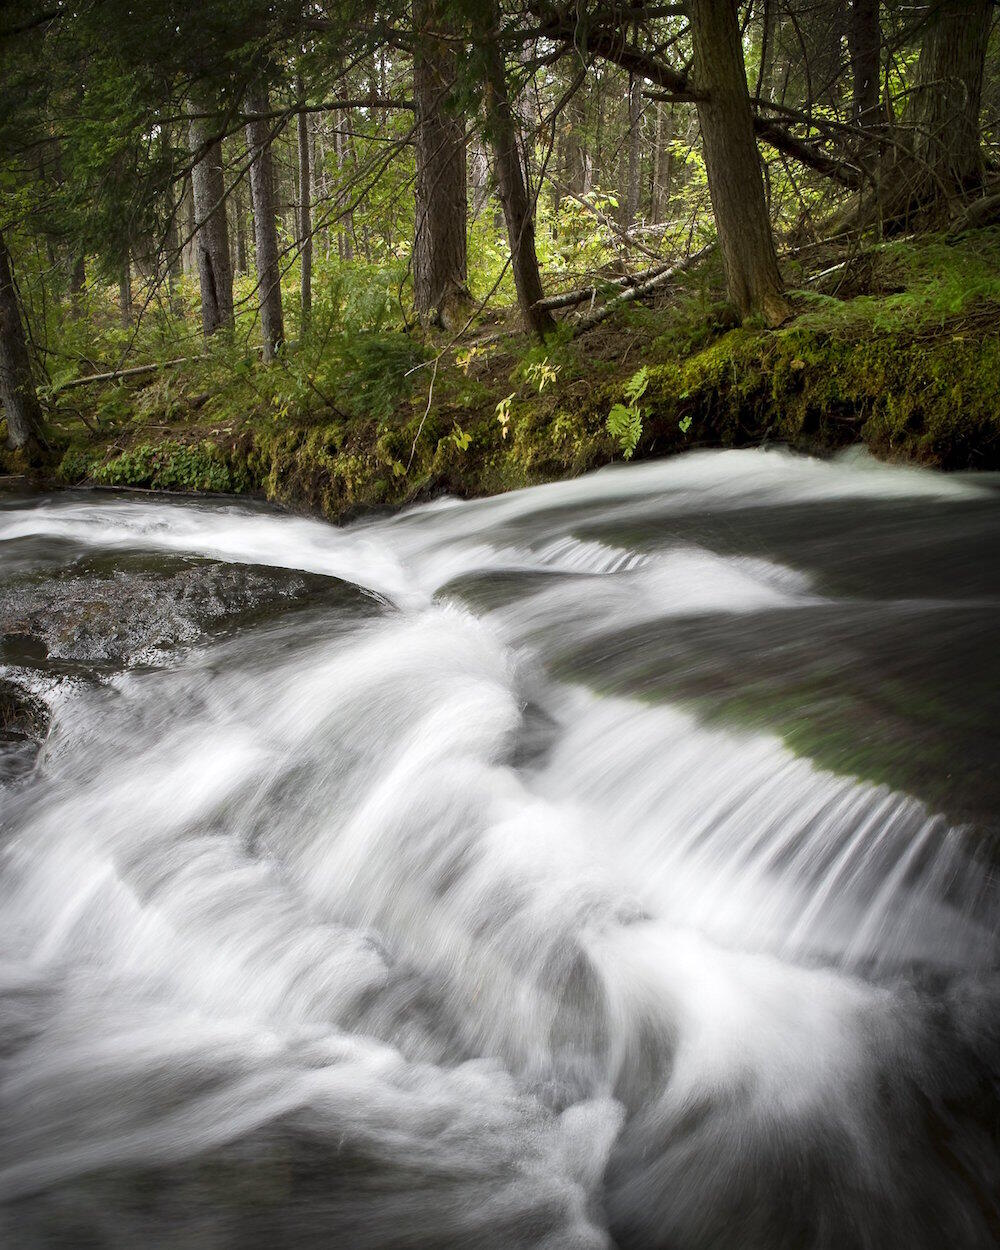 Flowing water over a small waterfall in forest